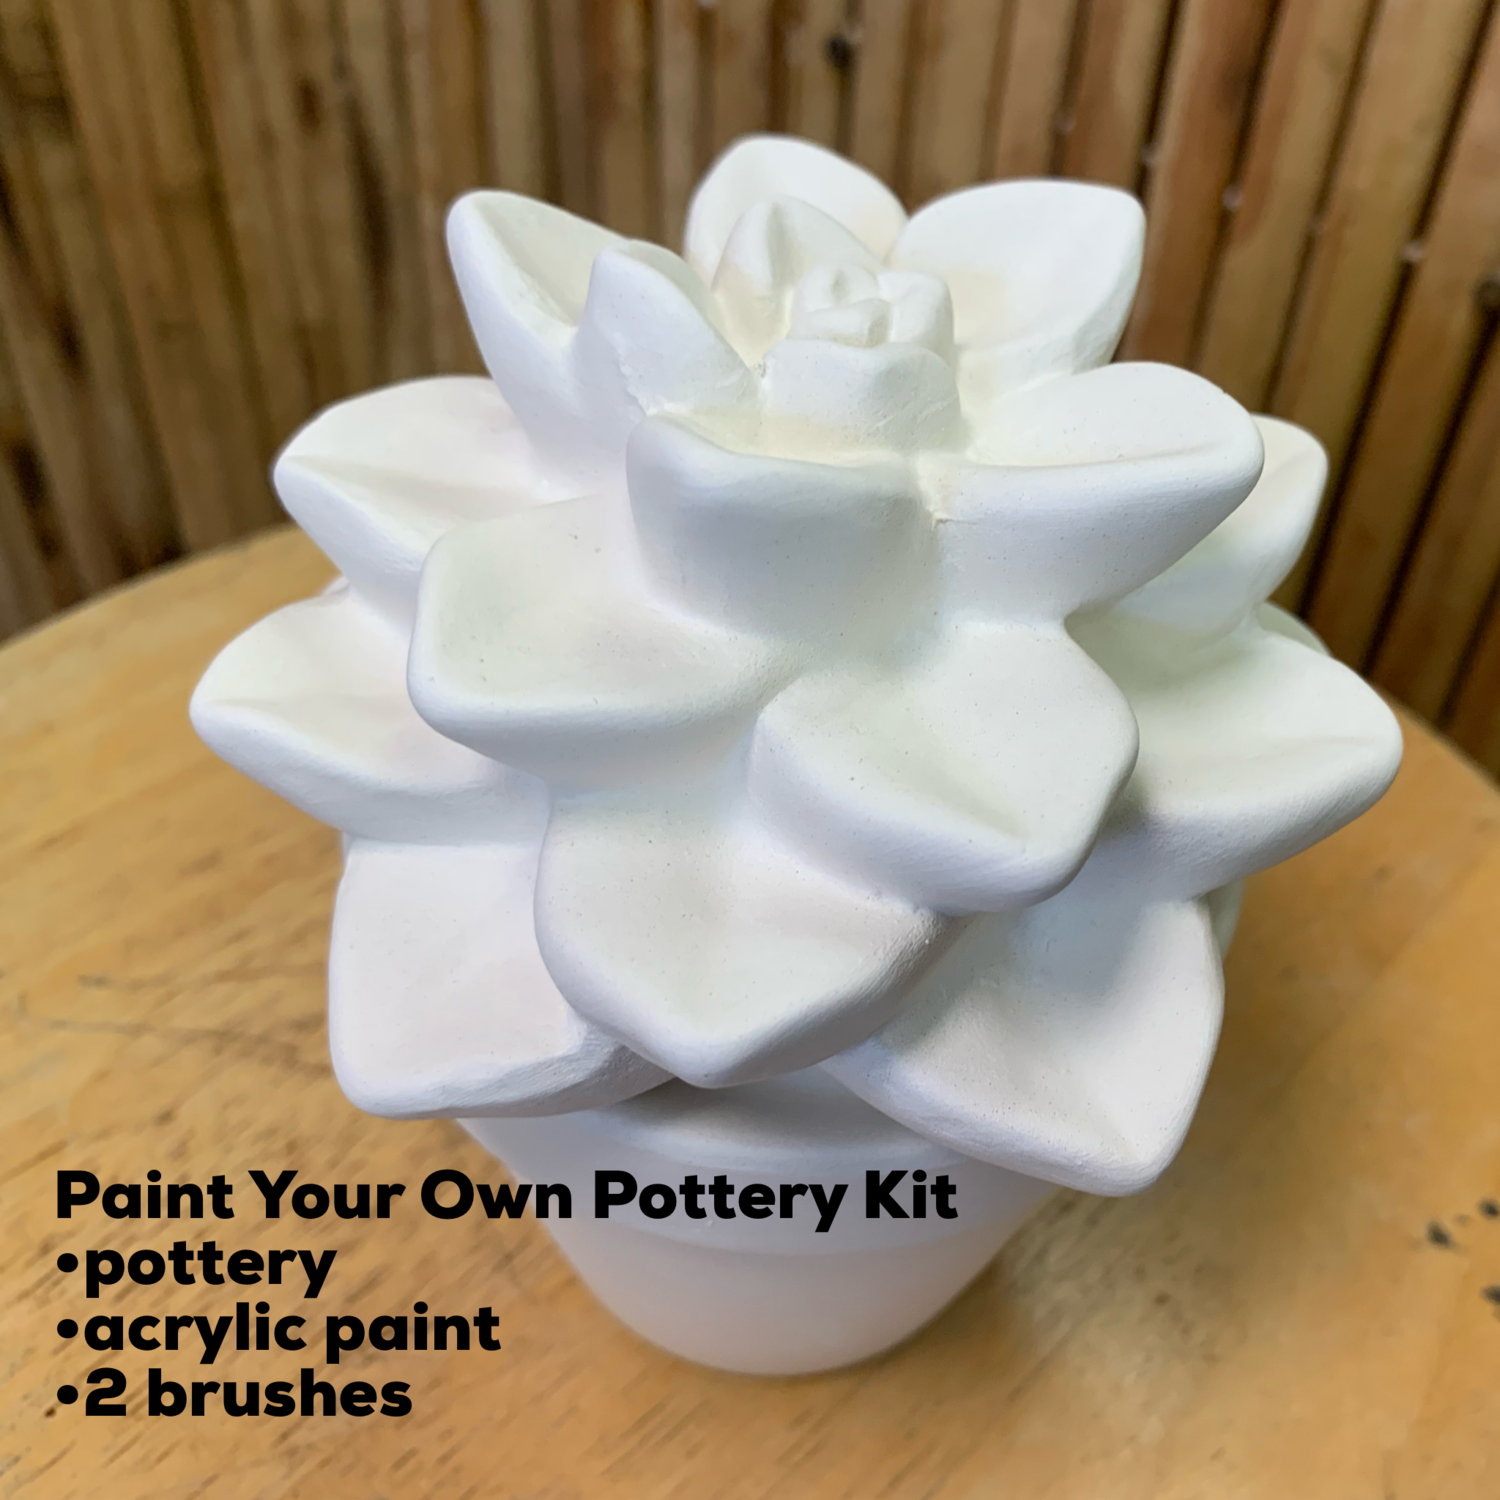 NO FIRE Paint Your Own Pottery Kit -  Ceramic Succulent Cactus Plant Acrylic Painting Kit